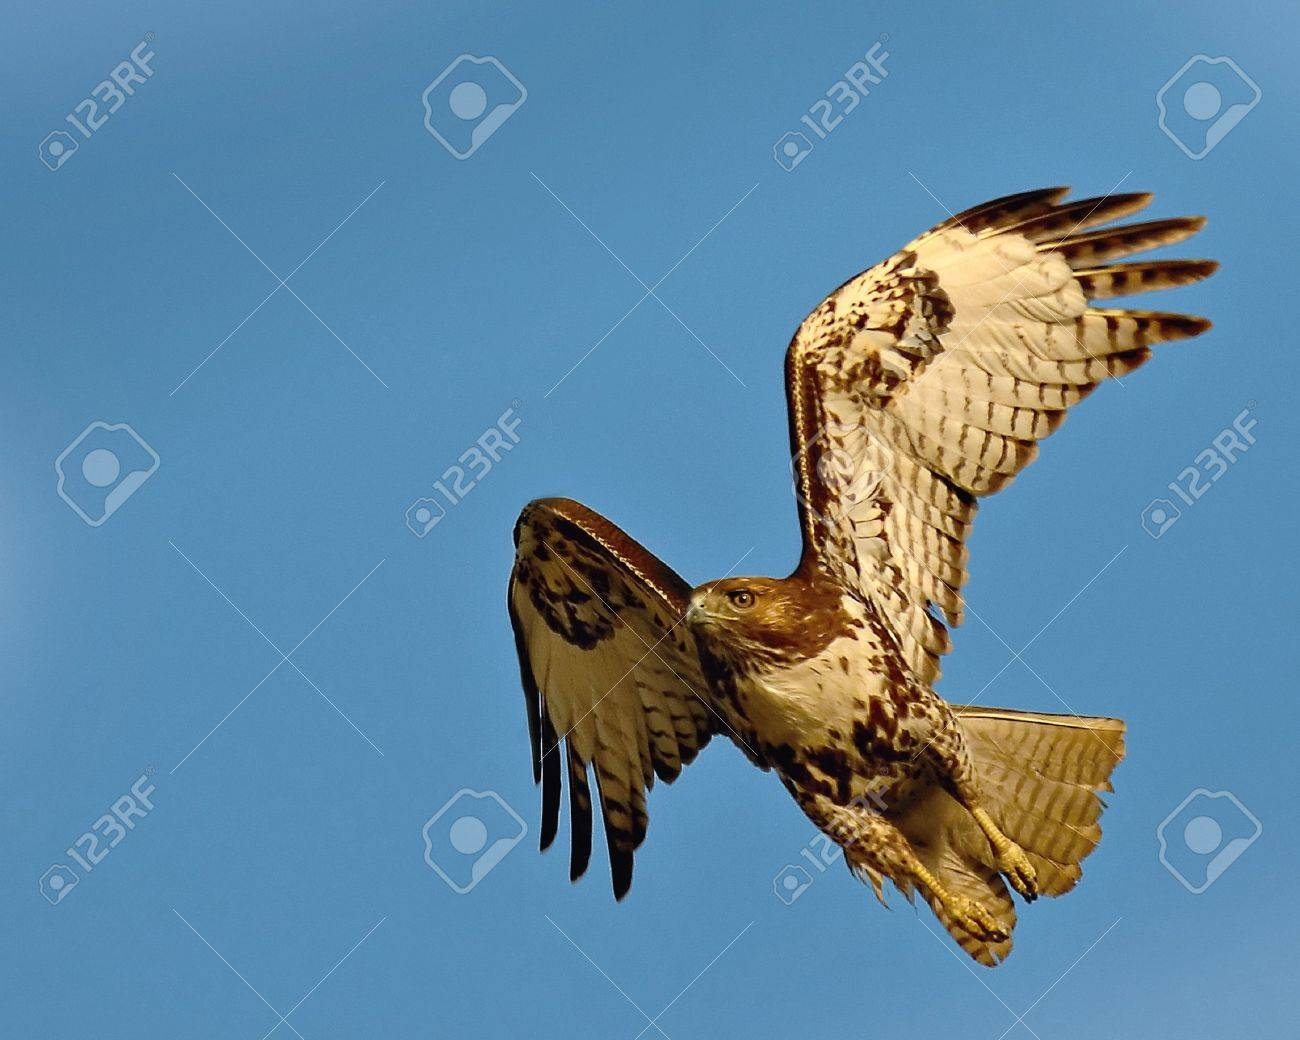 A Red Tail Hawk just taking off. Stock Photo - 4065846